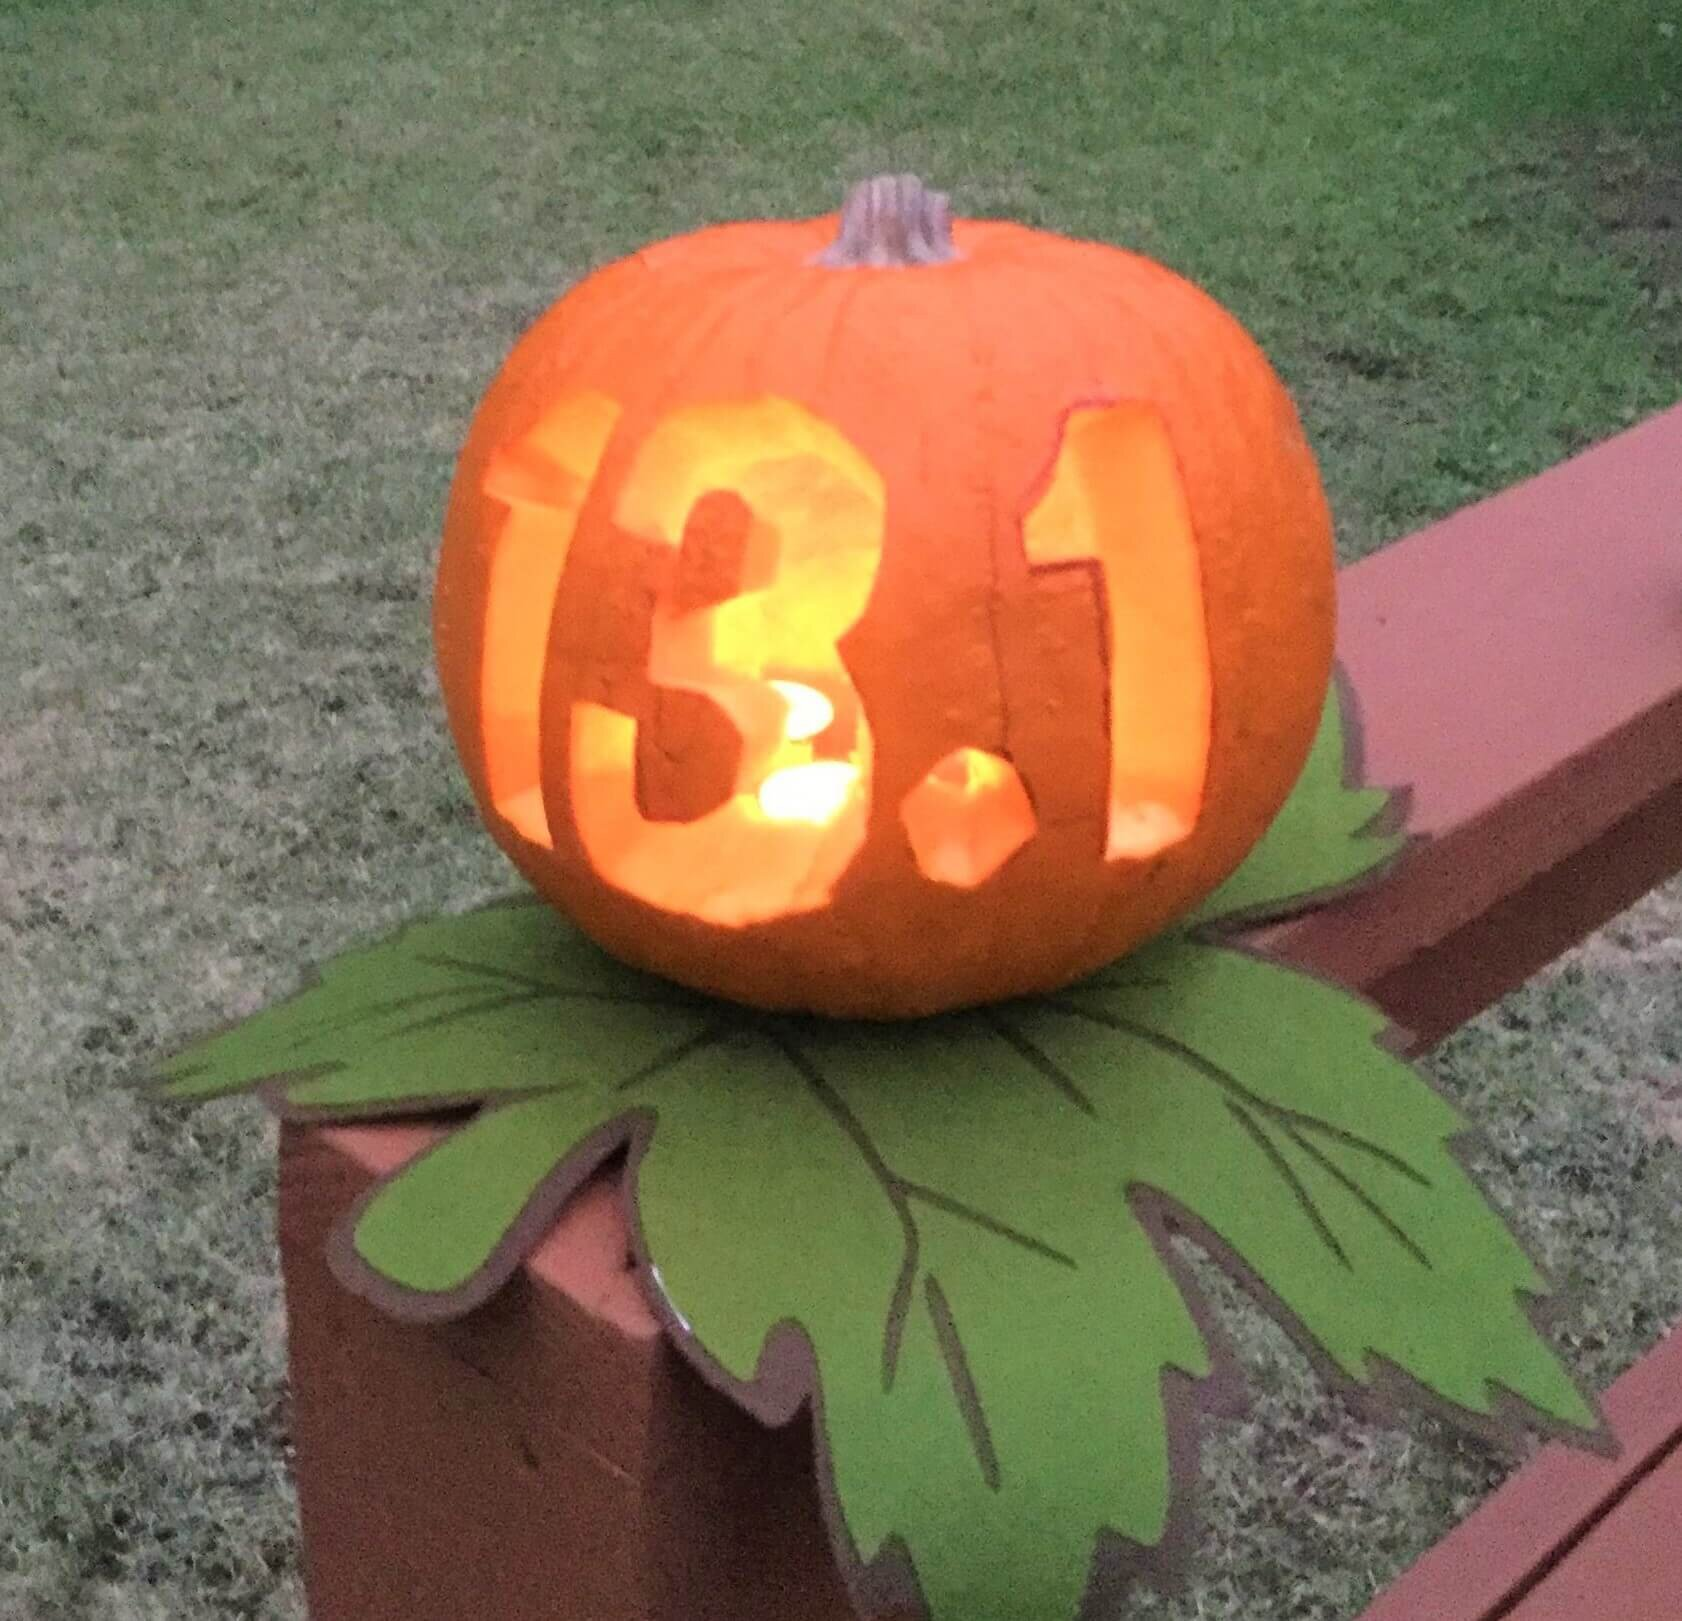 Pumpkin 13.1. My husband gets credit for carving the half marathon pumpkin.